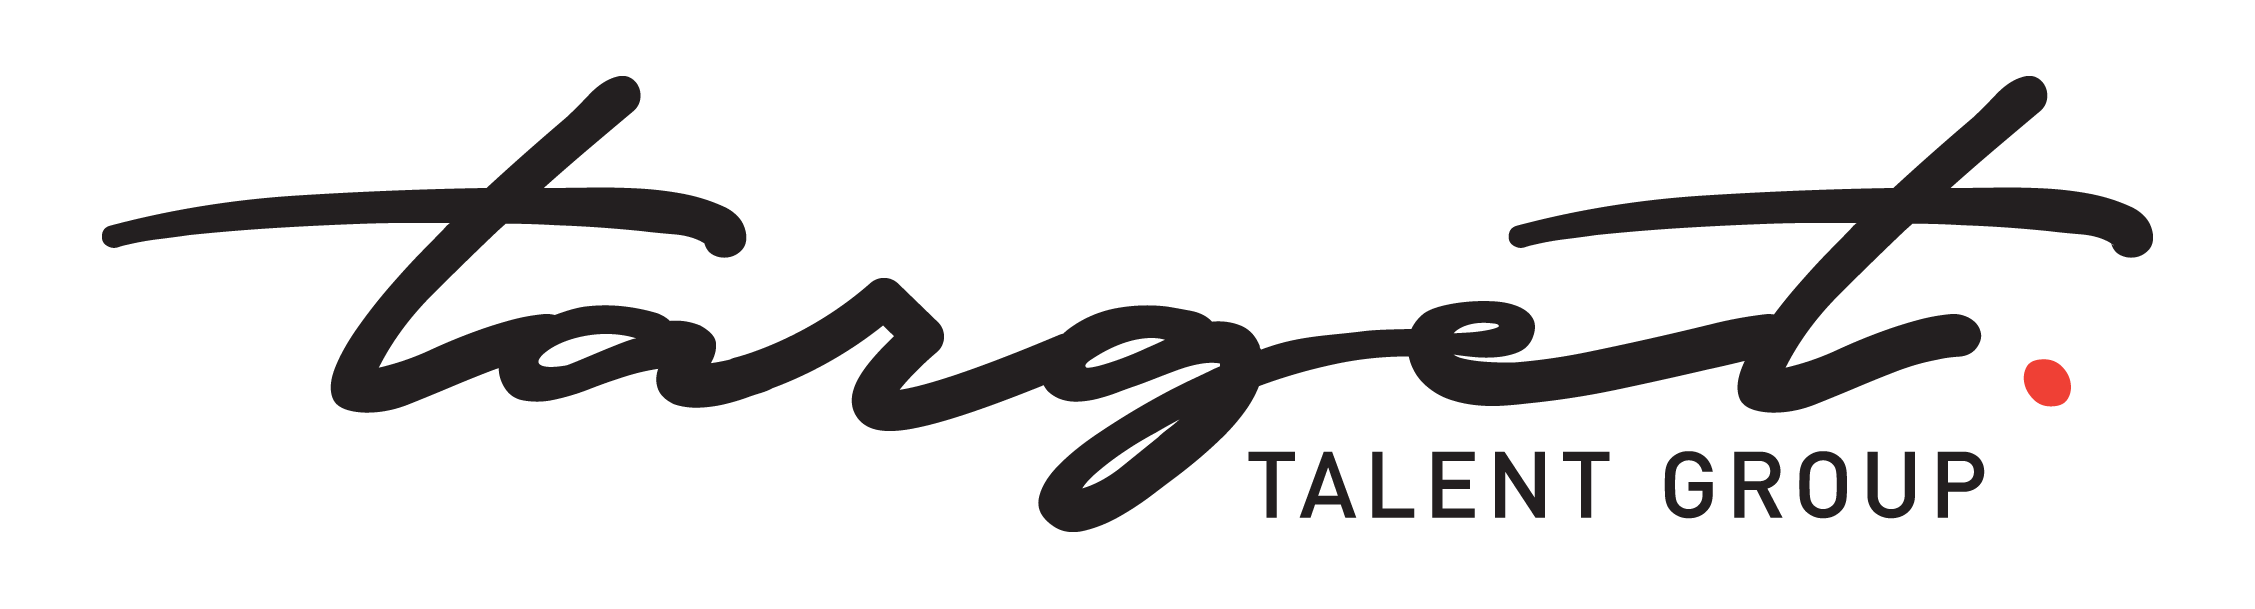 Targettg Talent Group